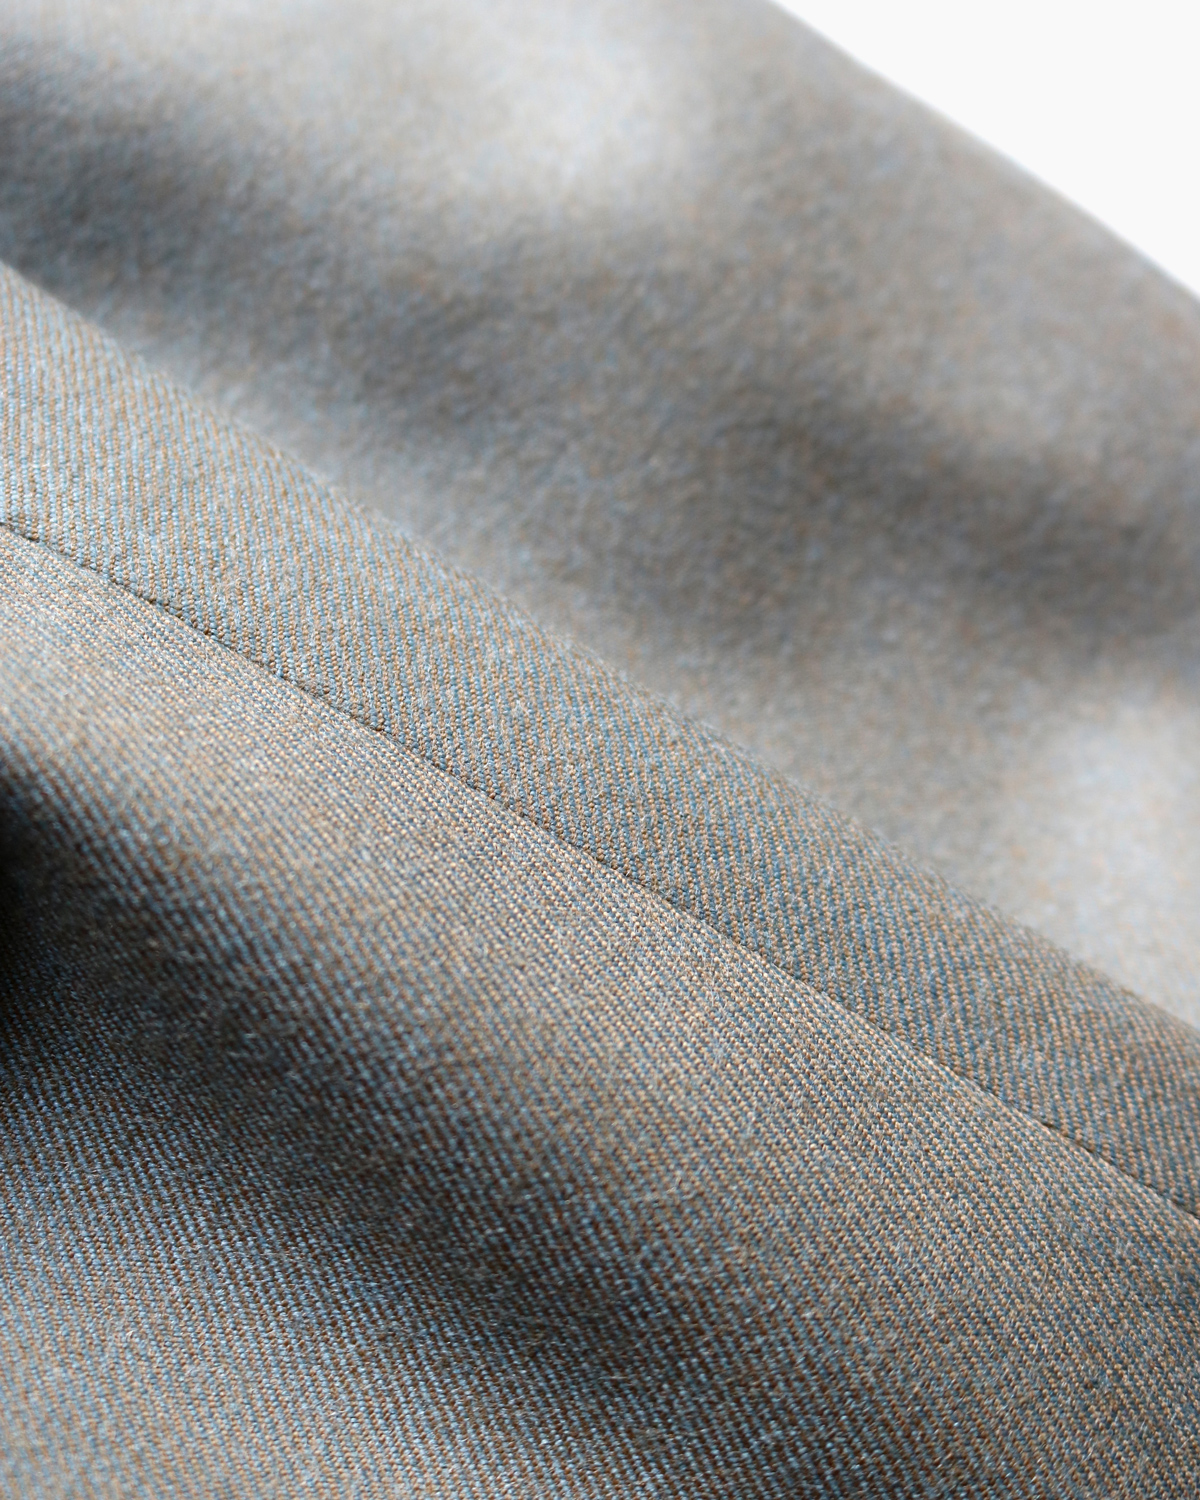 BOWER ROEBUCK FLANNEL|WIDE - Khaki Gray|NEAT